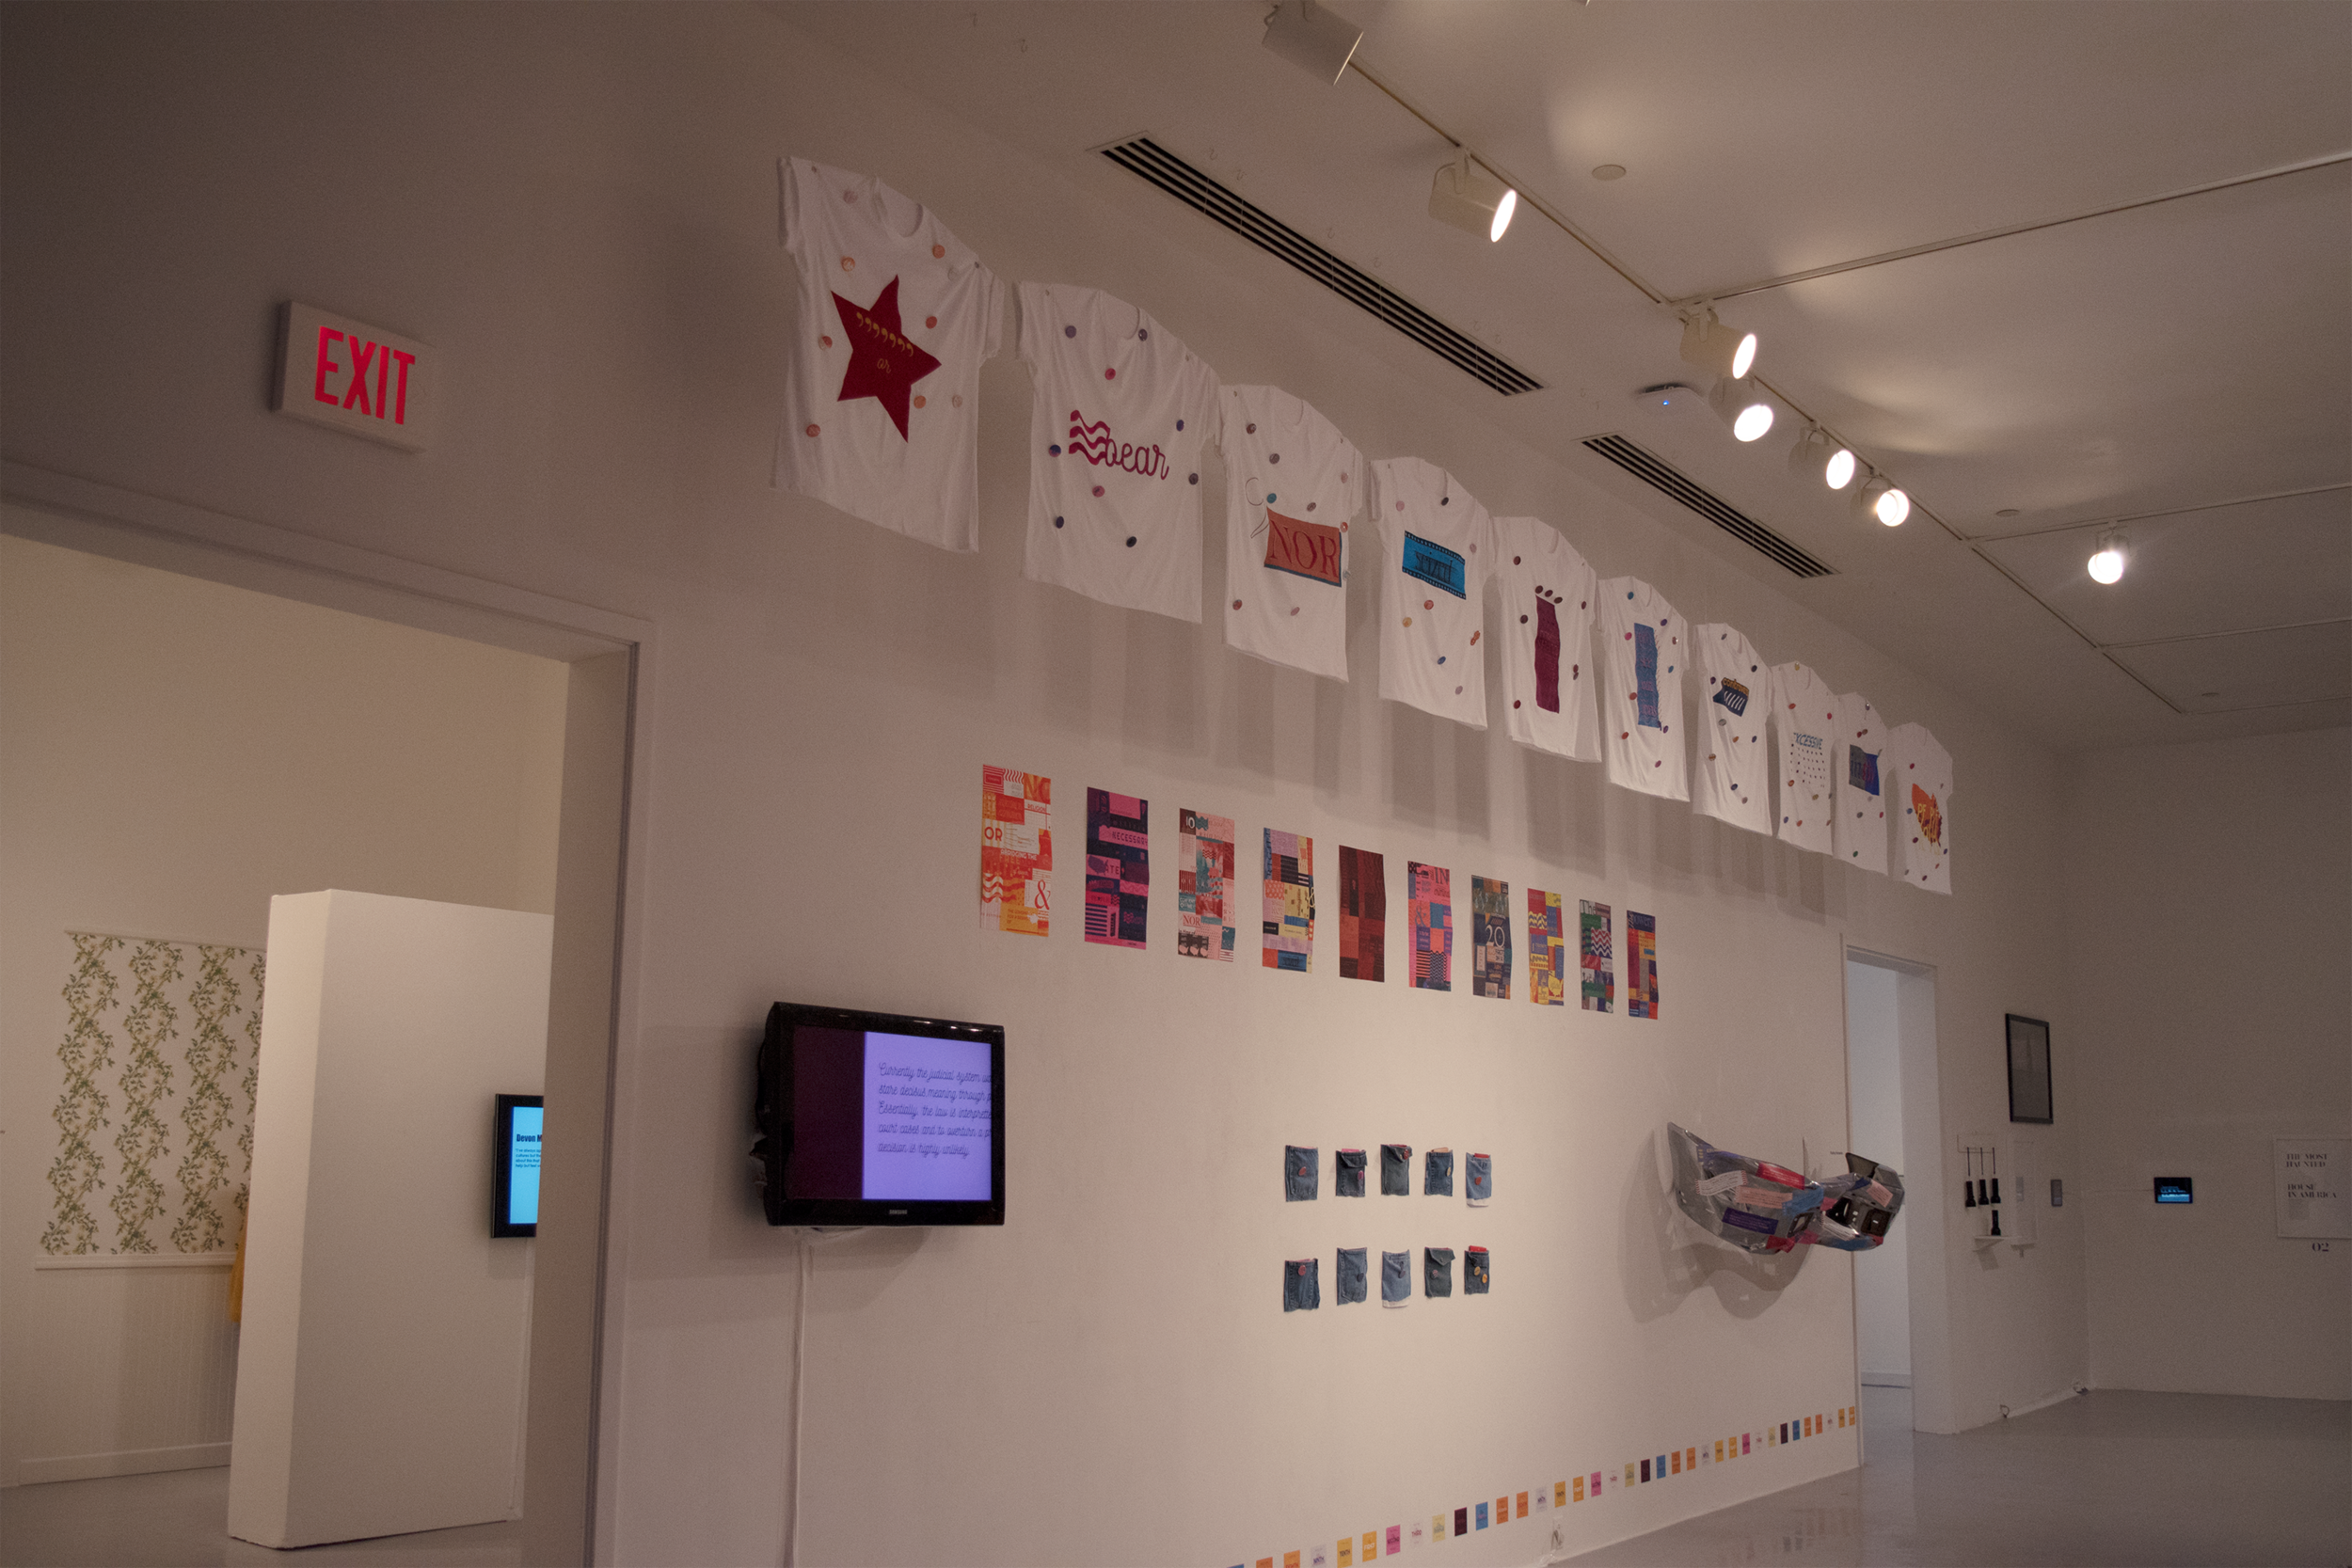 The installation included posters, t-shirts, pins, stickers, zines, and a video.